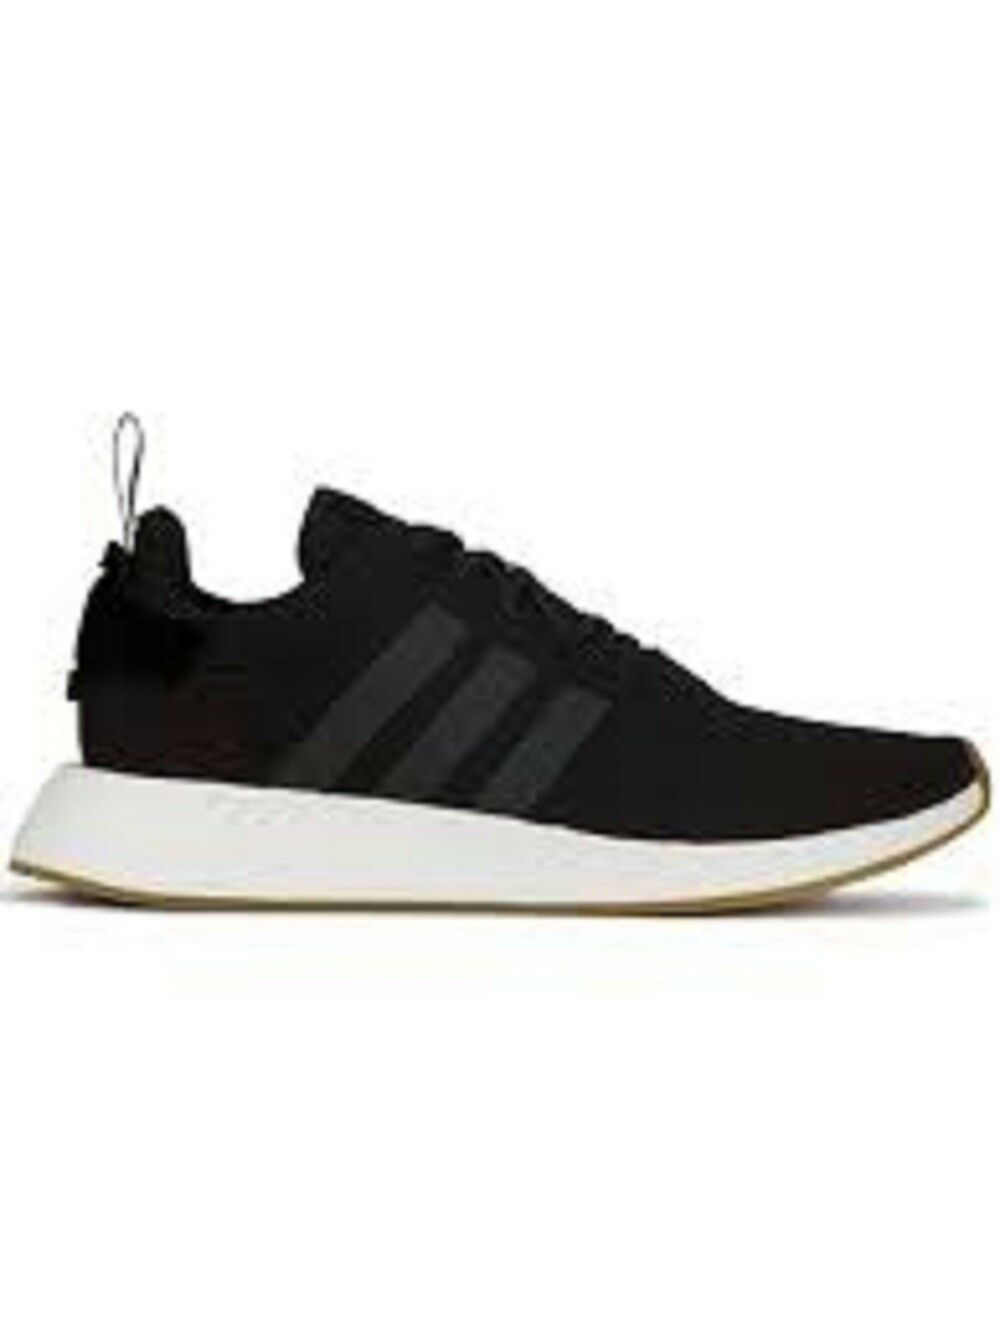 hombre adidas nmd_r2 - - nmd_r2 by9917 - C Negro Trainers 376653